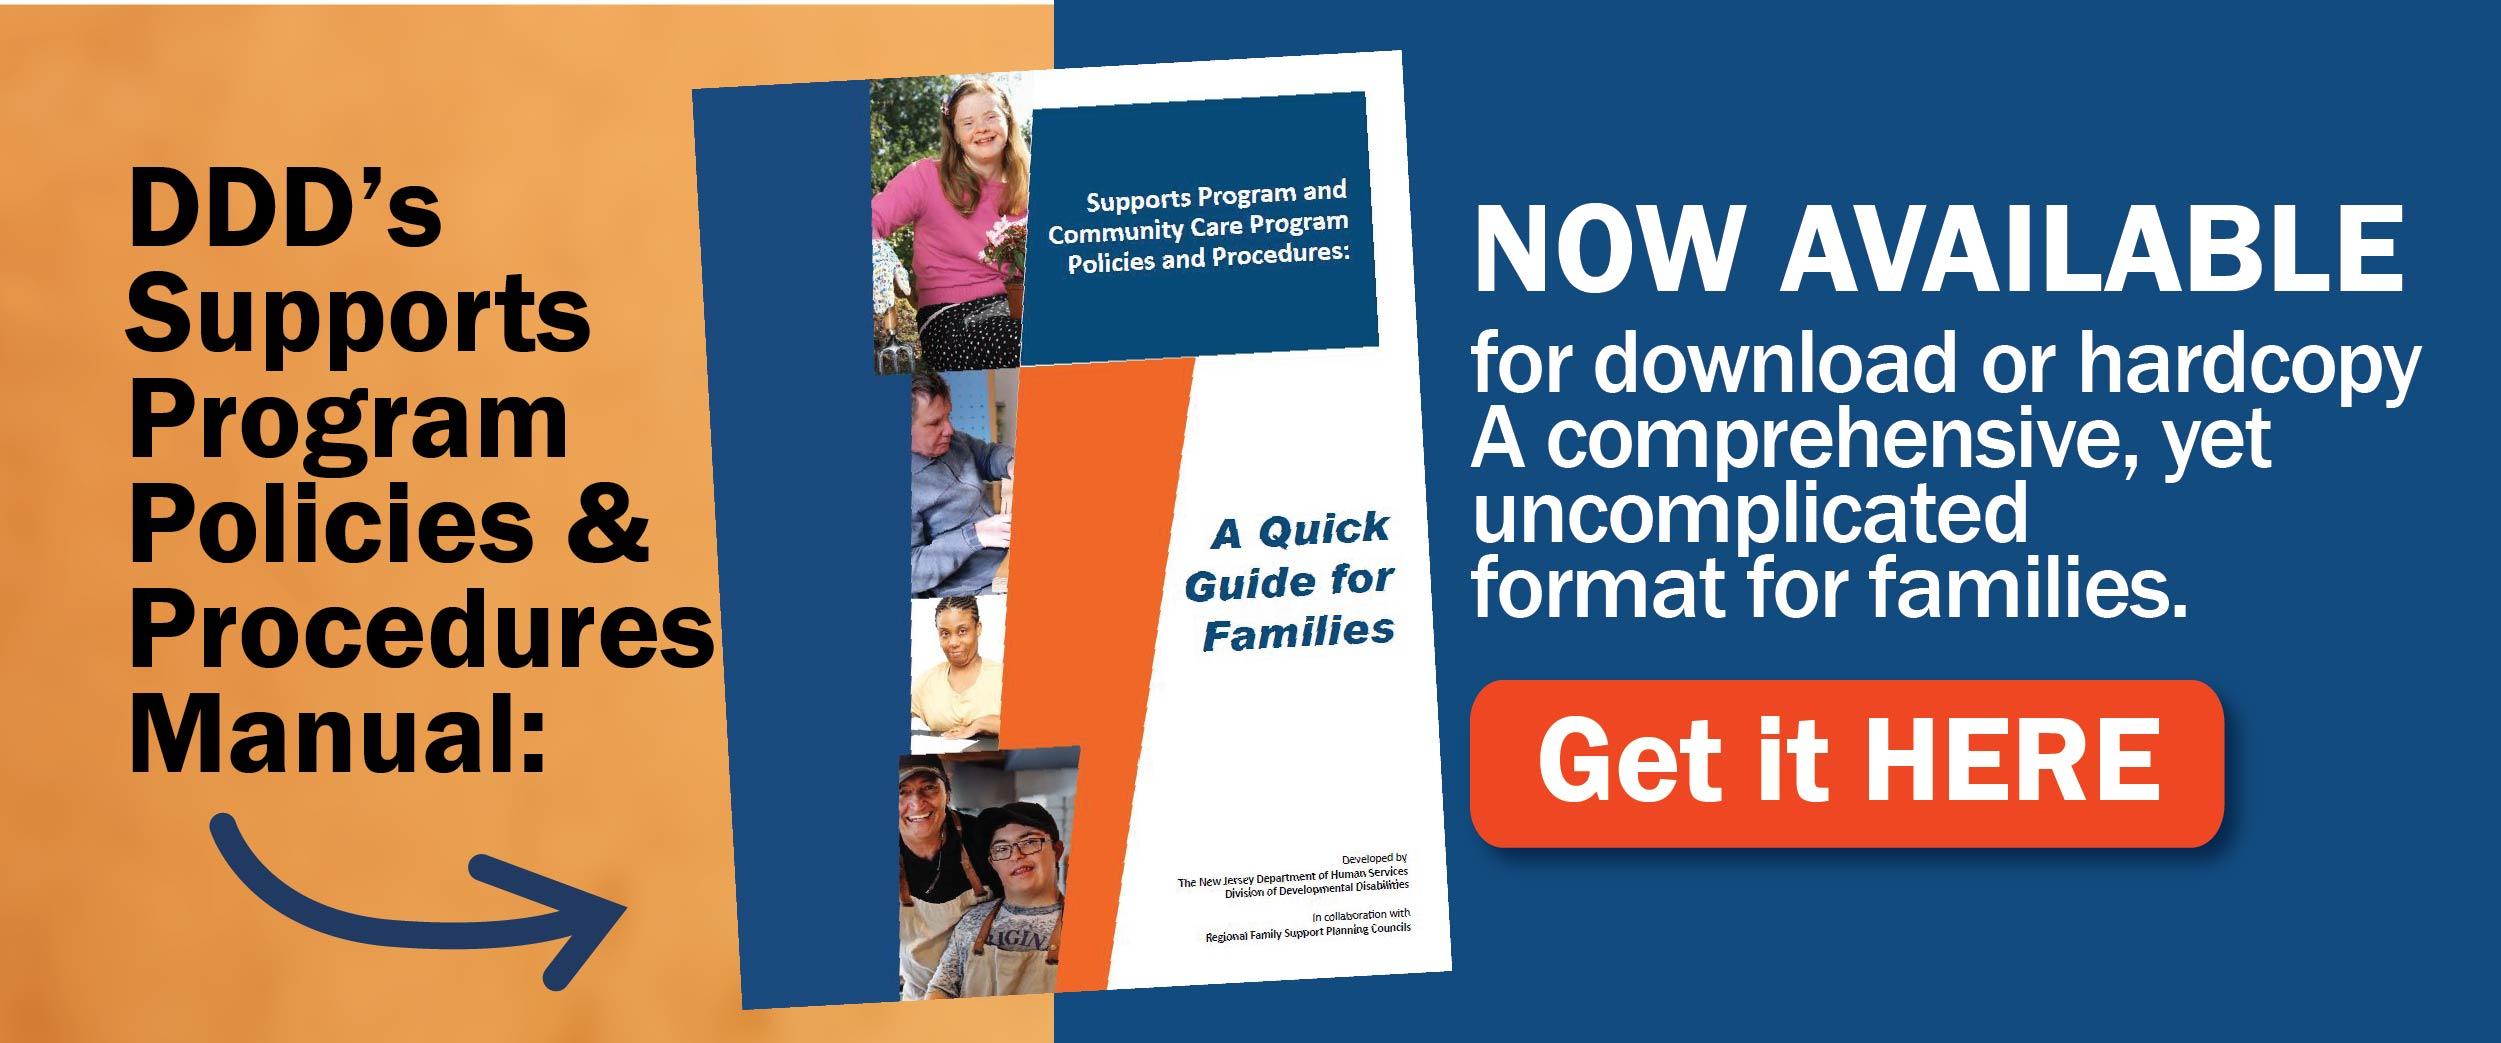 DDDs Supports Program Policies and Procedures Manual-banner